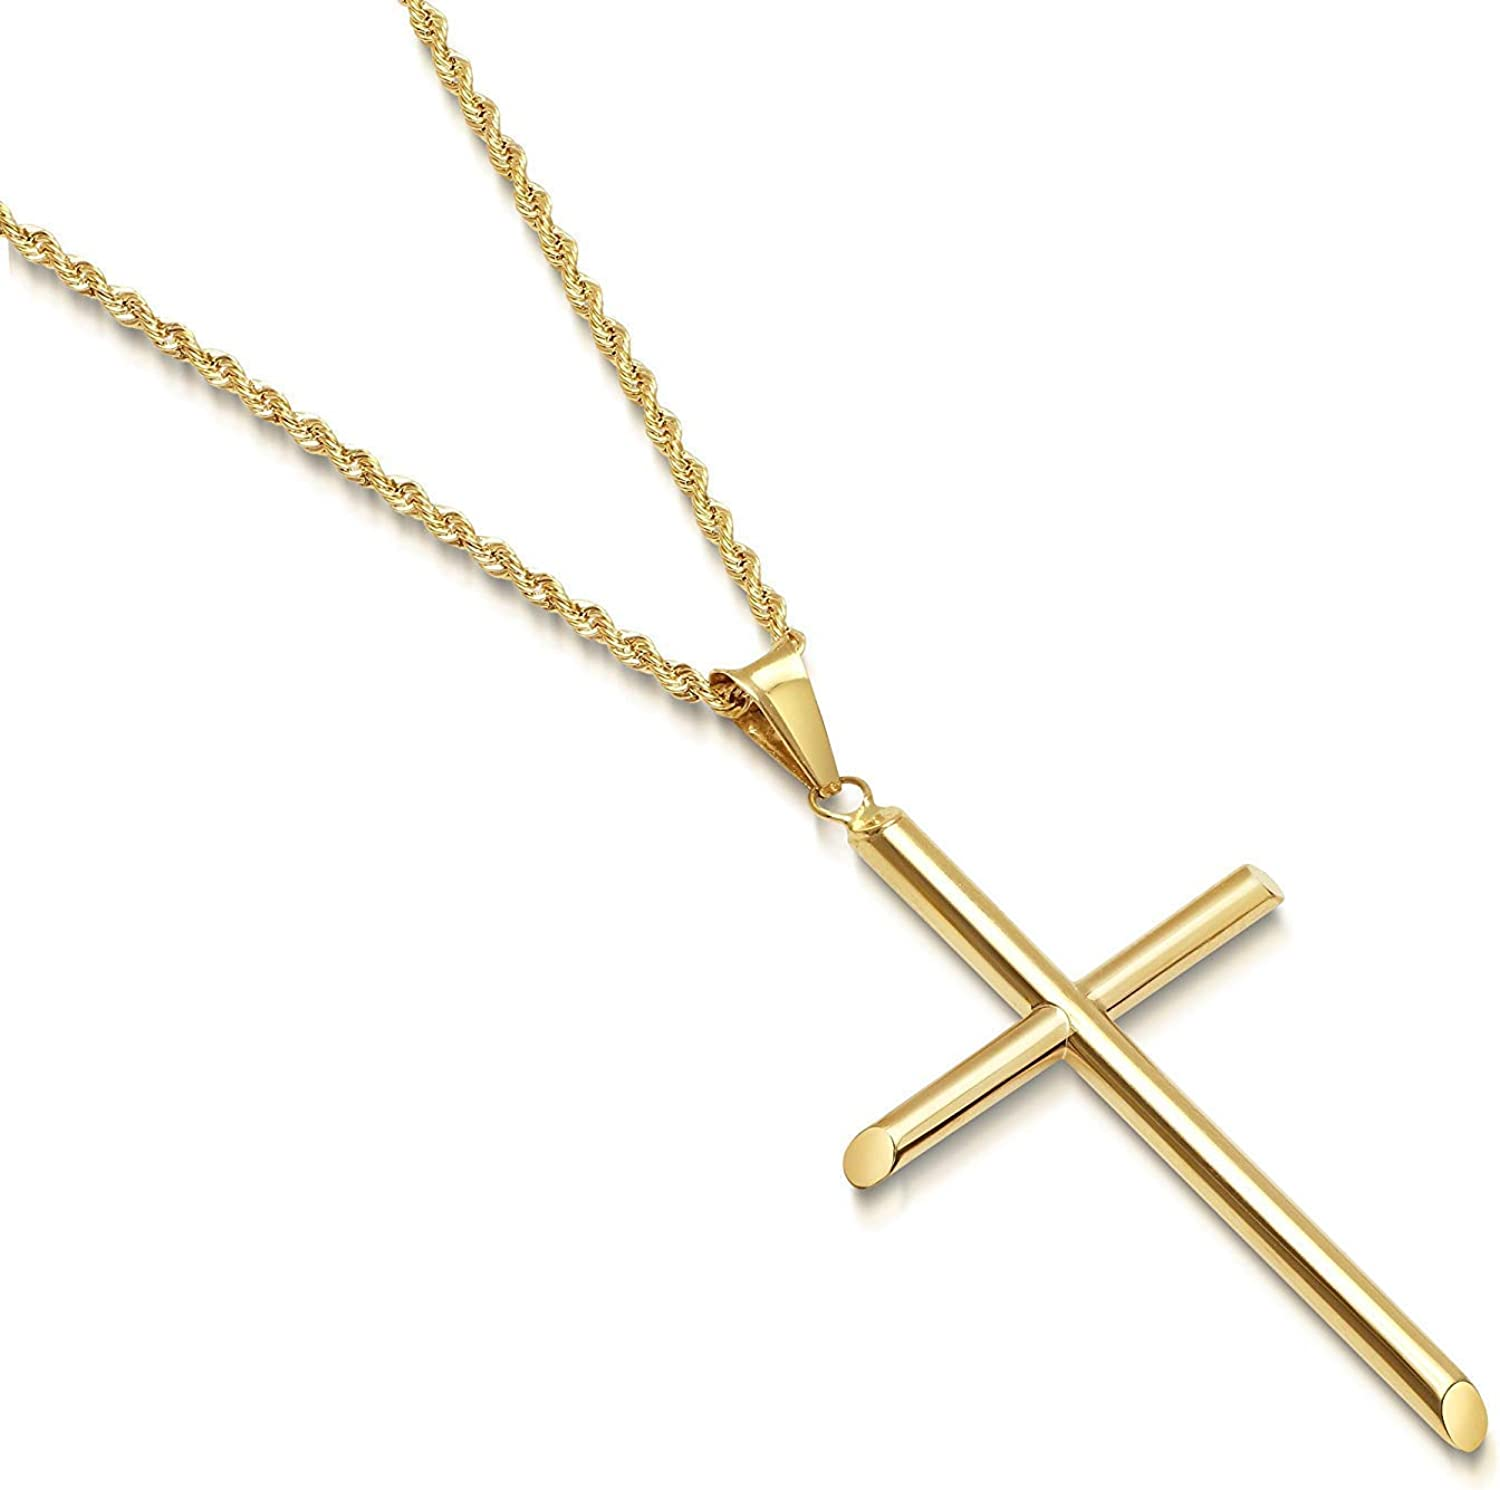 Hollywood Jewelry 14kt Gold Chain Cross Pendant 3MM Solid Plated Clasp for Men, Women, Teens. Diamond Cut Religious Necklace Charm Faith and Love